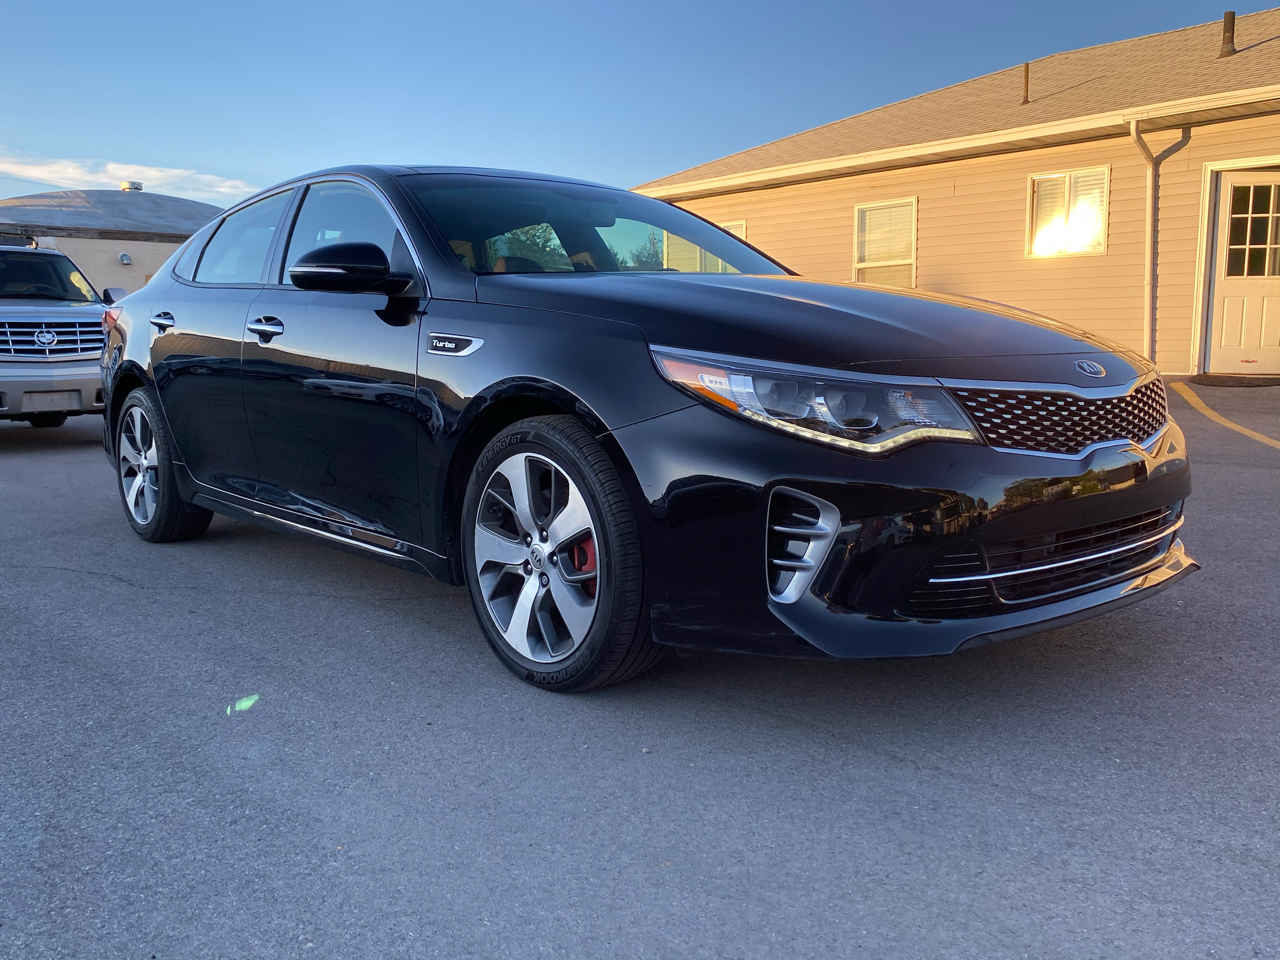 Kia Optima SX Turbo 2017